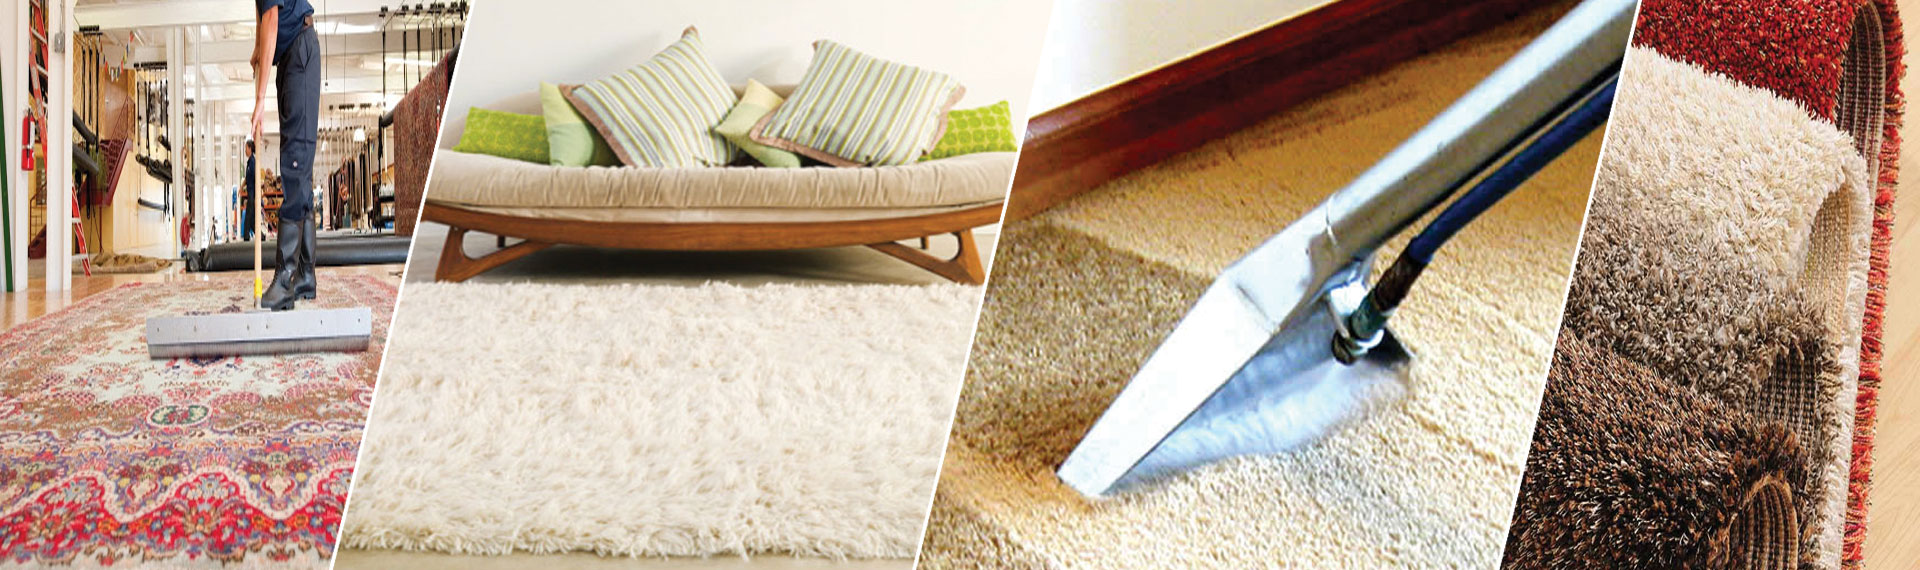 Robert Rug Cleaning Service Plymouth Meeting PA